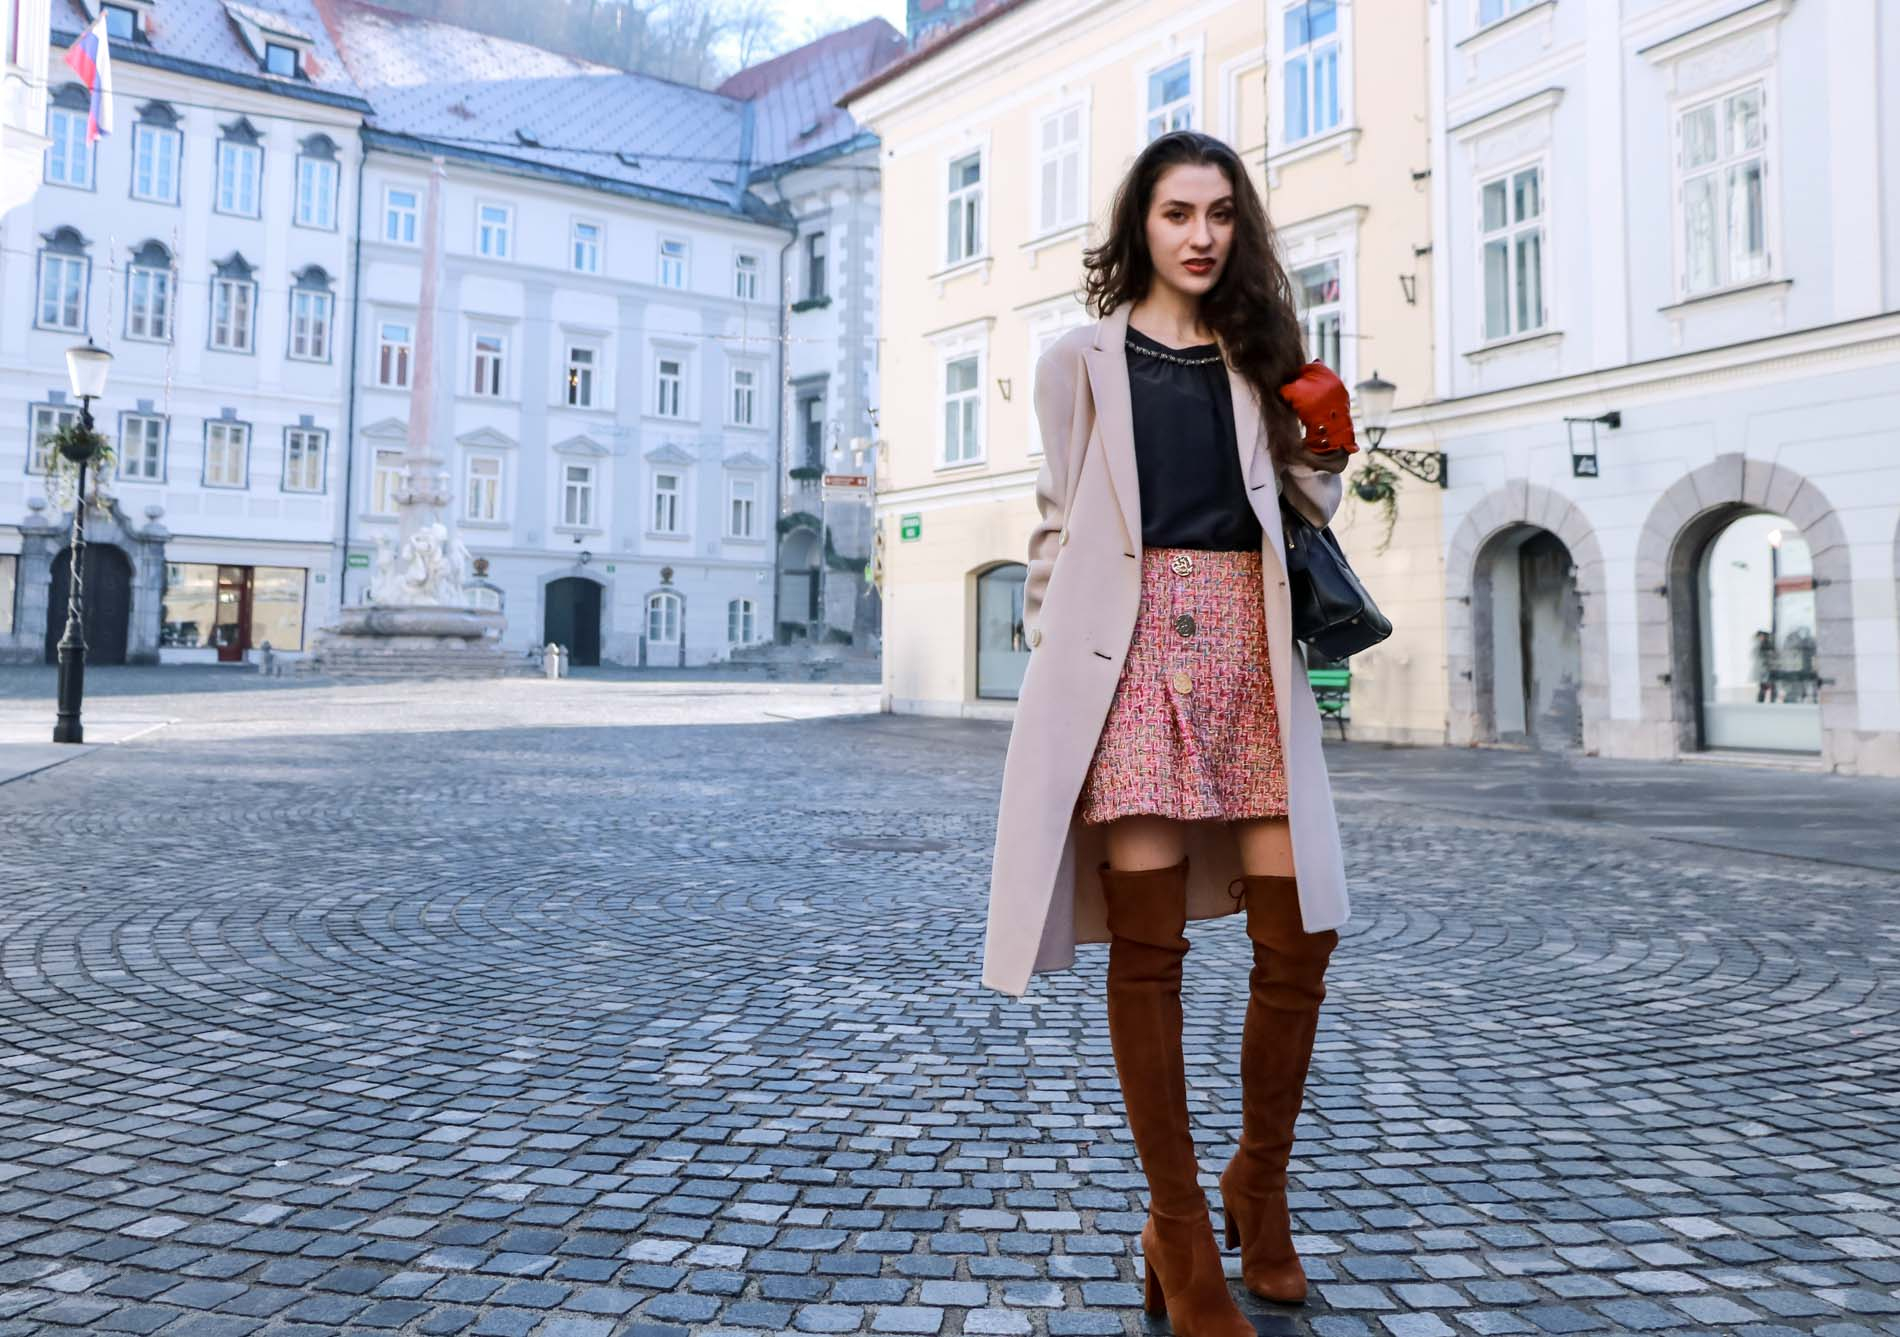 Fashion Blogger Veronika Lipar of Brunette from Wall Street wearing Storets pink tweed mini skirt, double breasted ivory coat from Weekend Maxmara, black silk blouse from Juicy couture, small black top handle bag, Stuart Weitzman chestnut over the knee boots from this winter